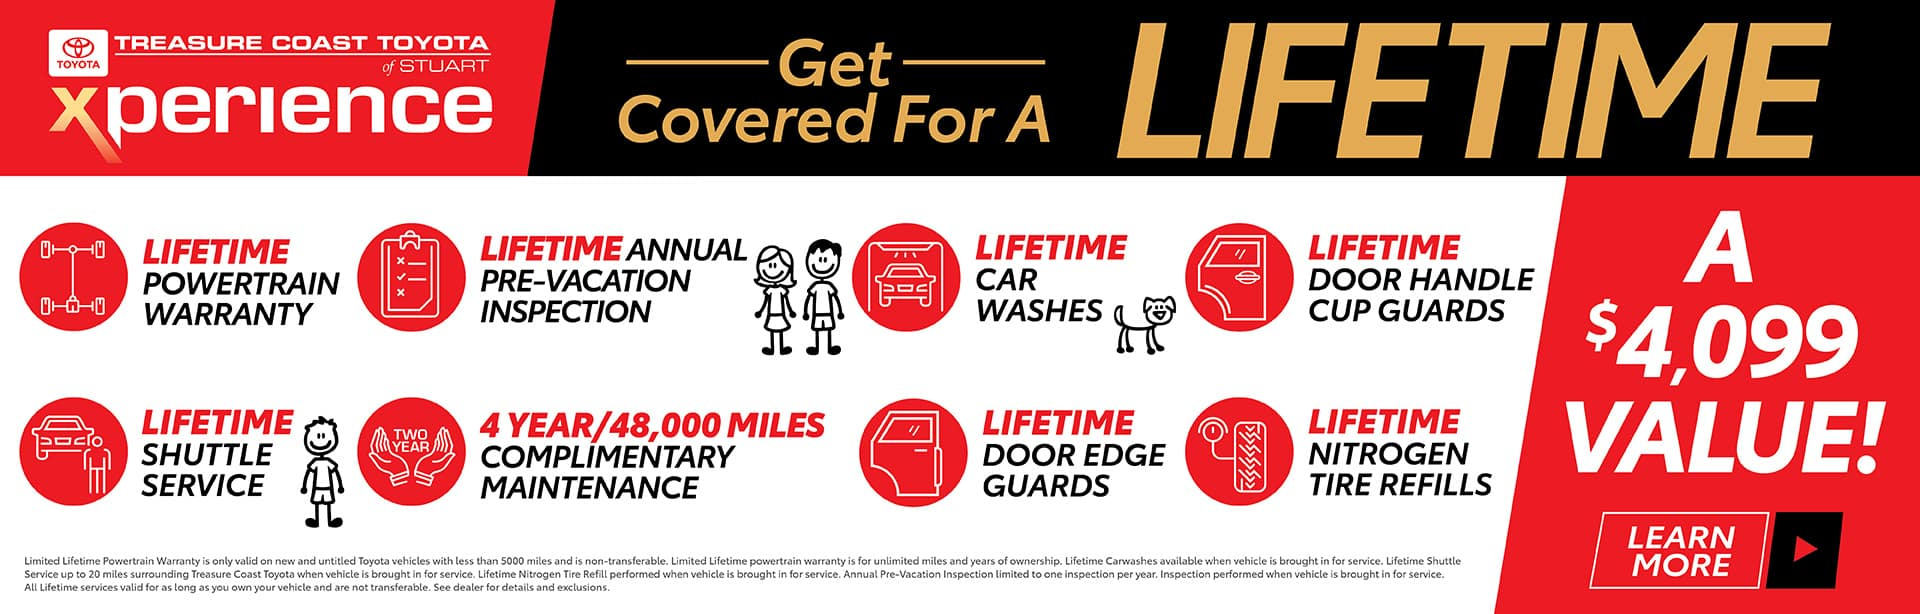 Get covered for a Lifetime